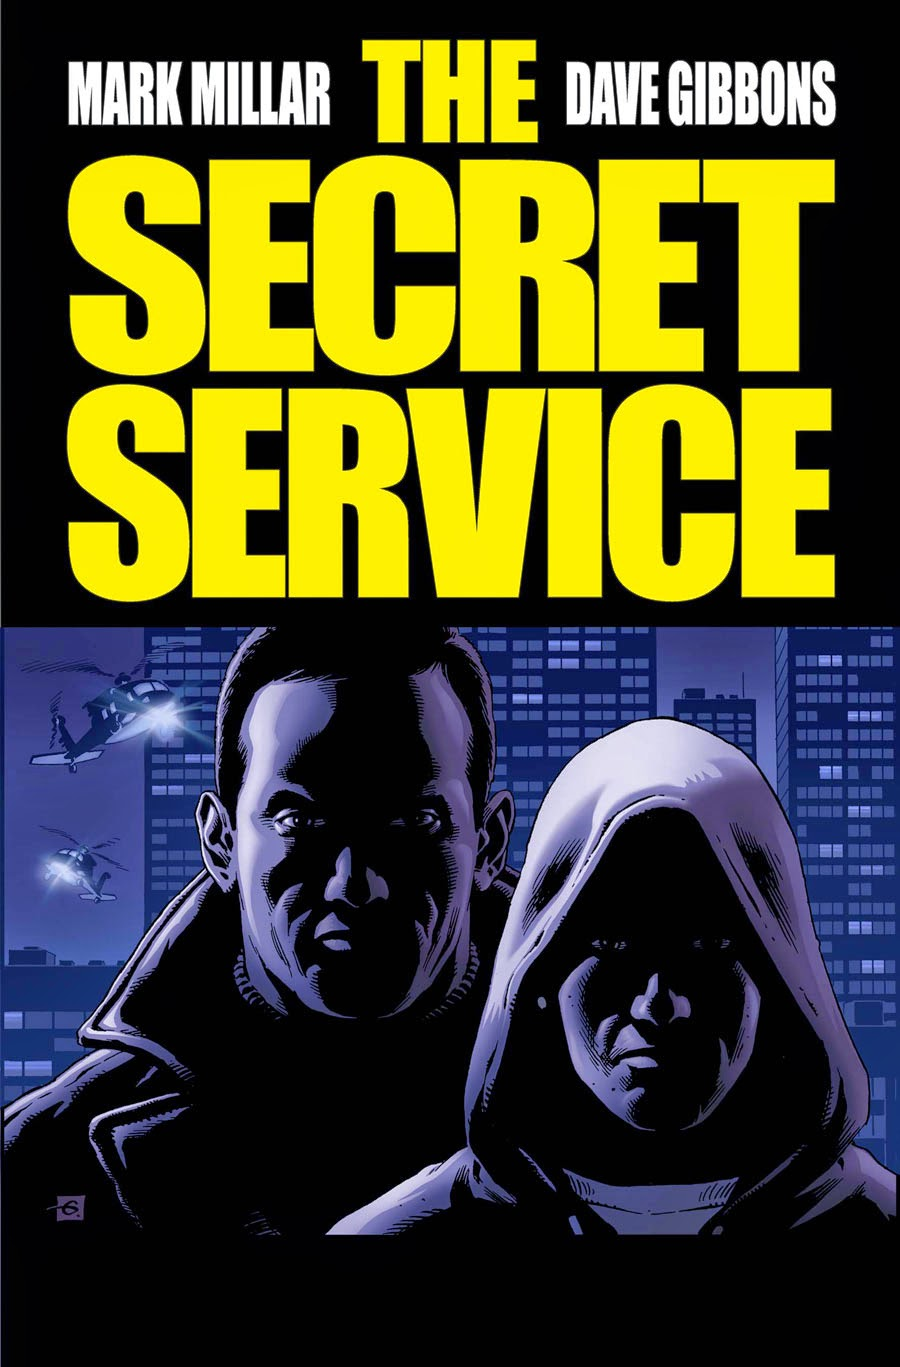 The Secret Service, Service secrets, Kingsman, Mark Millar, Bryan Hitch, Dave Gibbons, Matthew Vaughn, Wanted, J.G. Jones, Kick-Ass, John Romita Jr, Nemesis, Steve McNiven, Super Crooks, Francis Yu Leinil, Jupiter's Legacy, Frank Quitely, Superior, Gary Unwin, Jack London, Mark Hamill, James Arnold, Samuel L. Jackson, Valentine, Colin Firth, Harry Hart, Mark Strong, Michael Caine, Jack Davenport, Lancelot, Taron Egerton, Gary Unwin, test, trailer, critique, avis, comic-book, comics, film, chronique, article, geek me hard, geekmehard